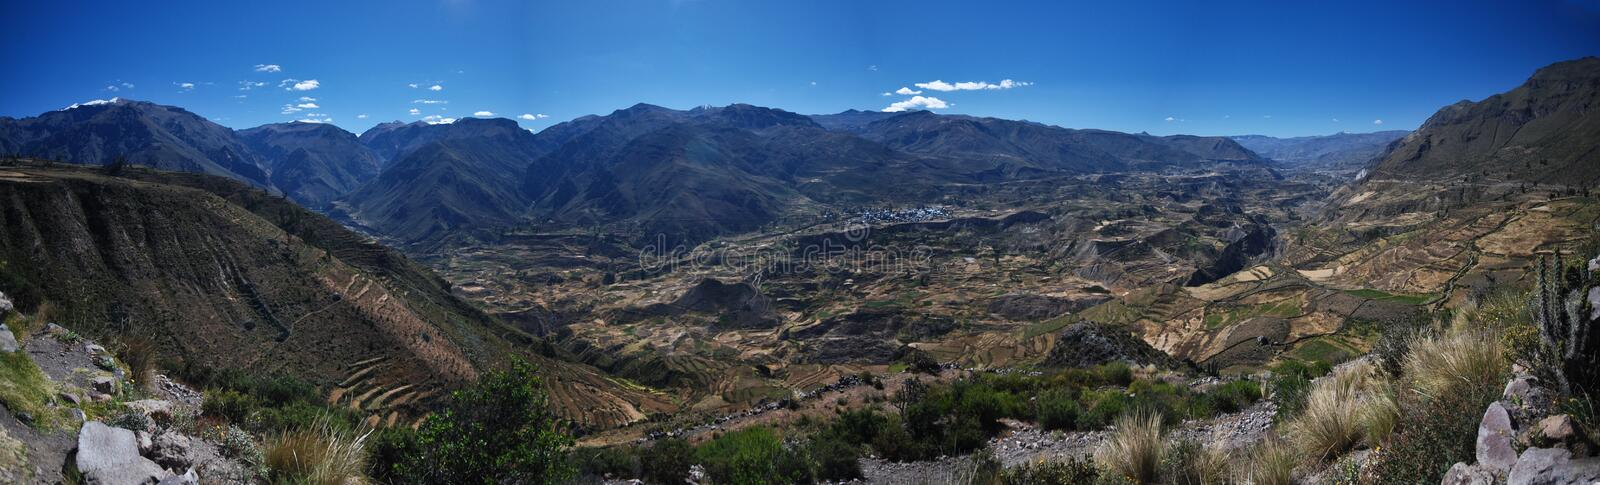 Colca Canyon of Peru royalty free stock image